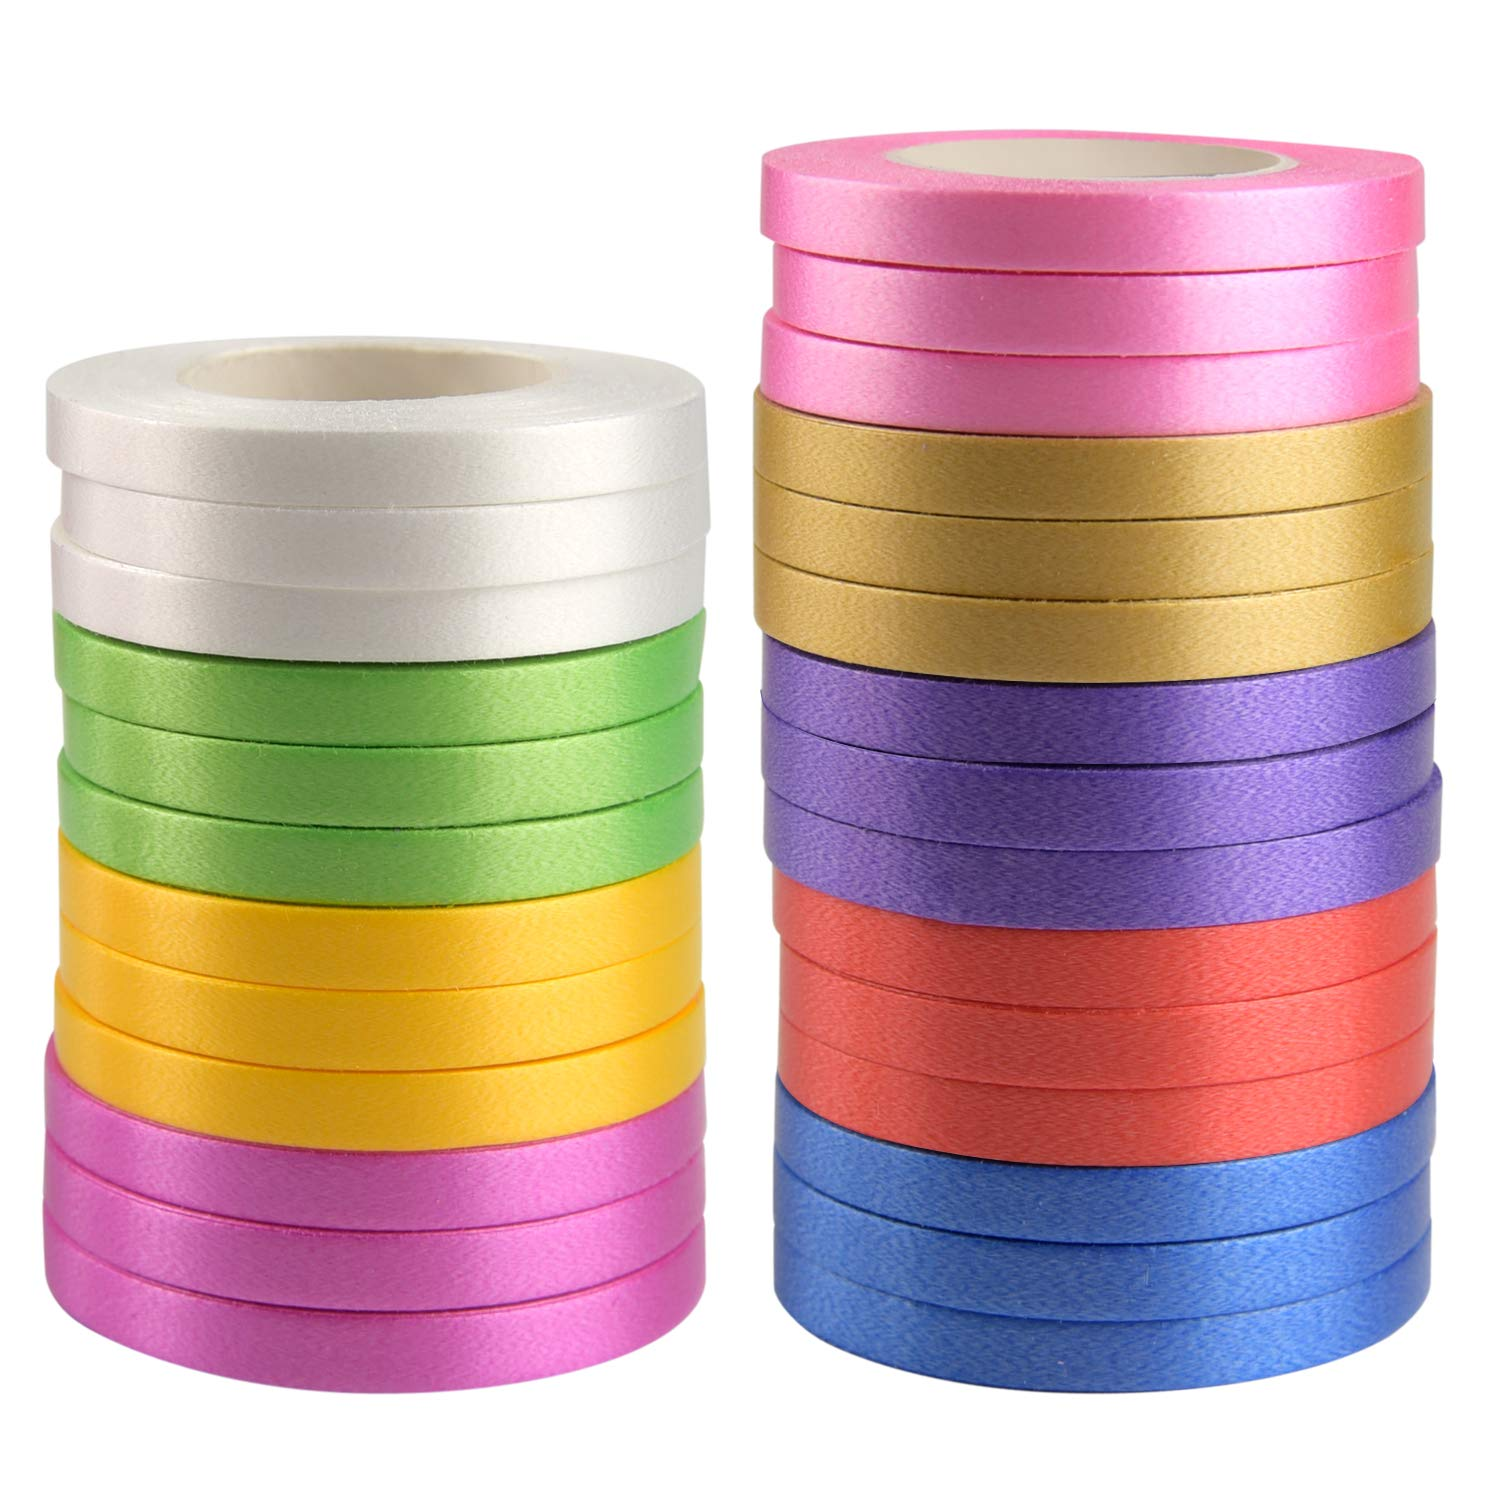 TUPARKA 270m x 5 mm Curling Ribbon Valentines Ribbon Set Wrapping Ribbon Balloon Ribbon Rolls Ribbons for Gift Wrapping Valentine Wedding Party Decoration (27 Rolls, 10m/Roll)